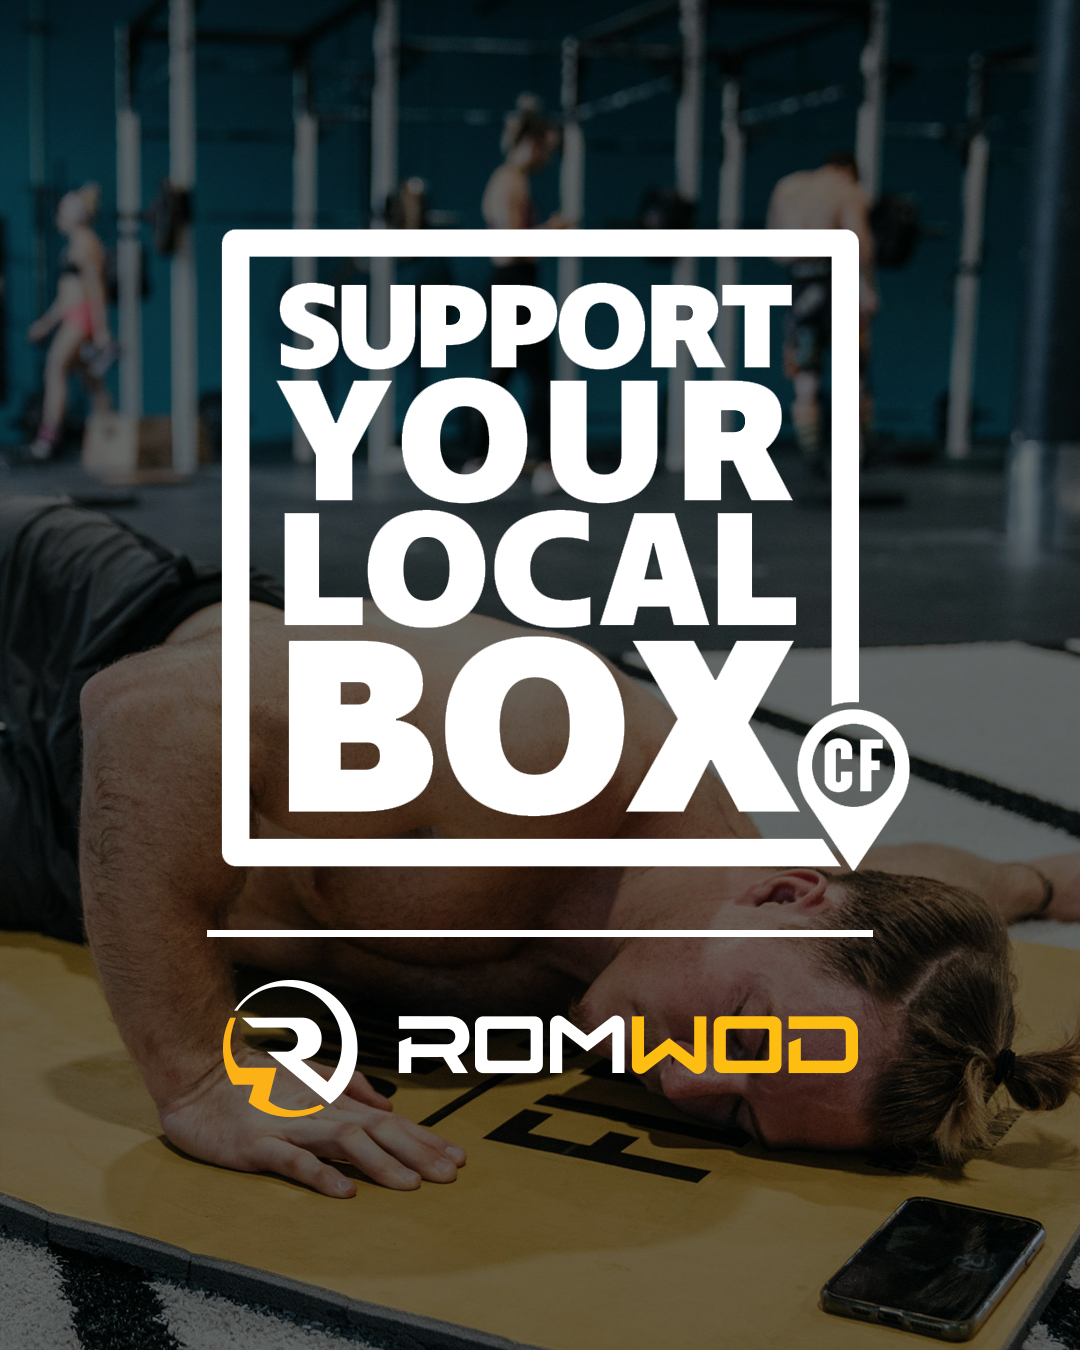 ROMWOD to Match US$25,000 for Support Your Local Box